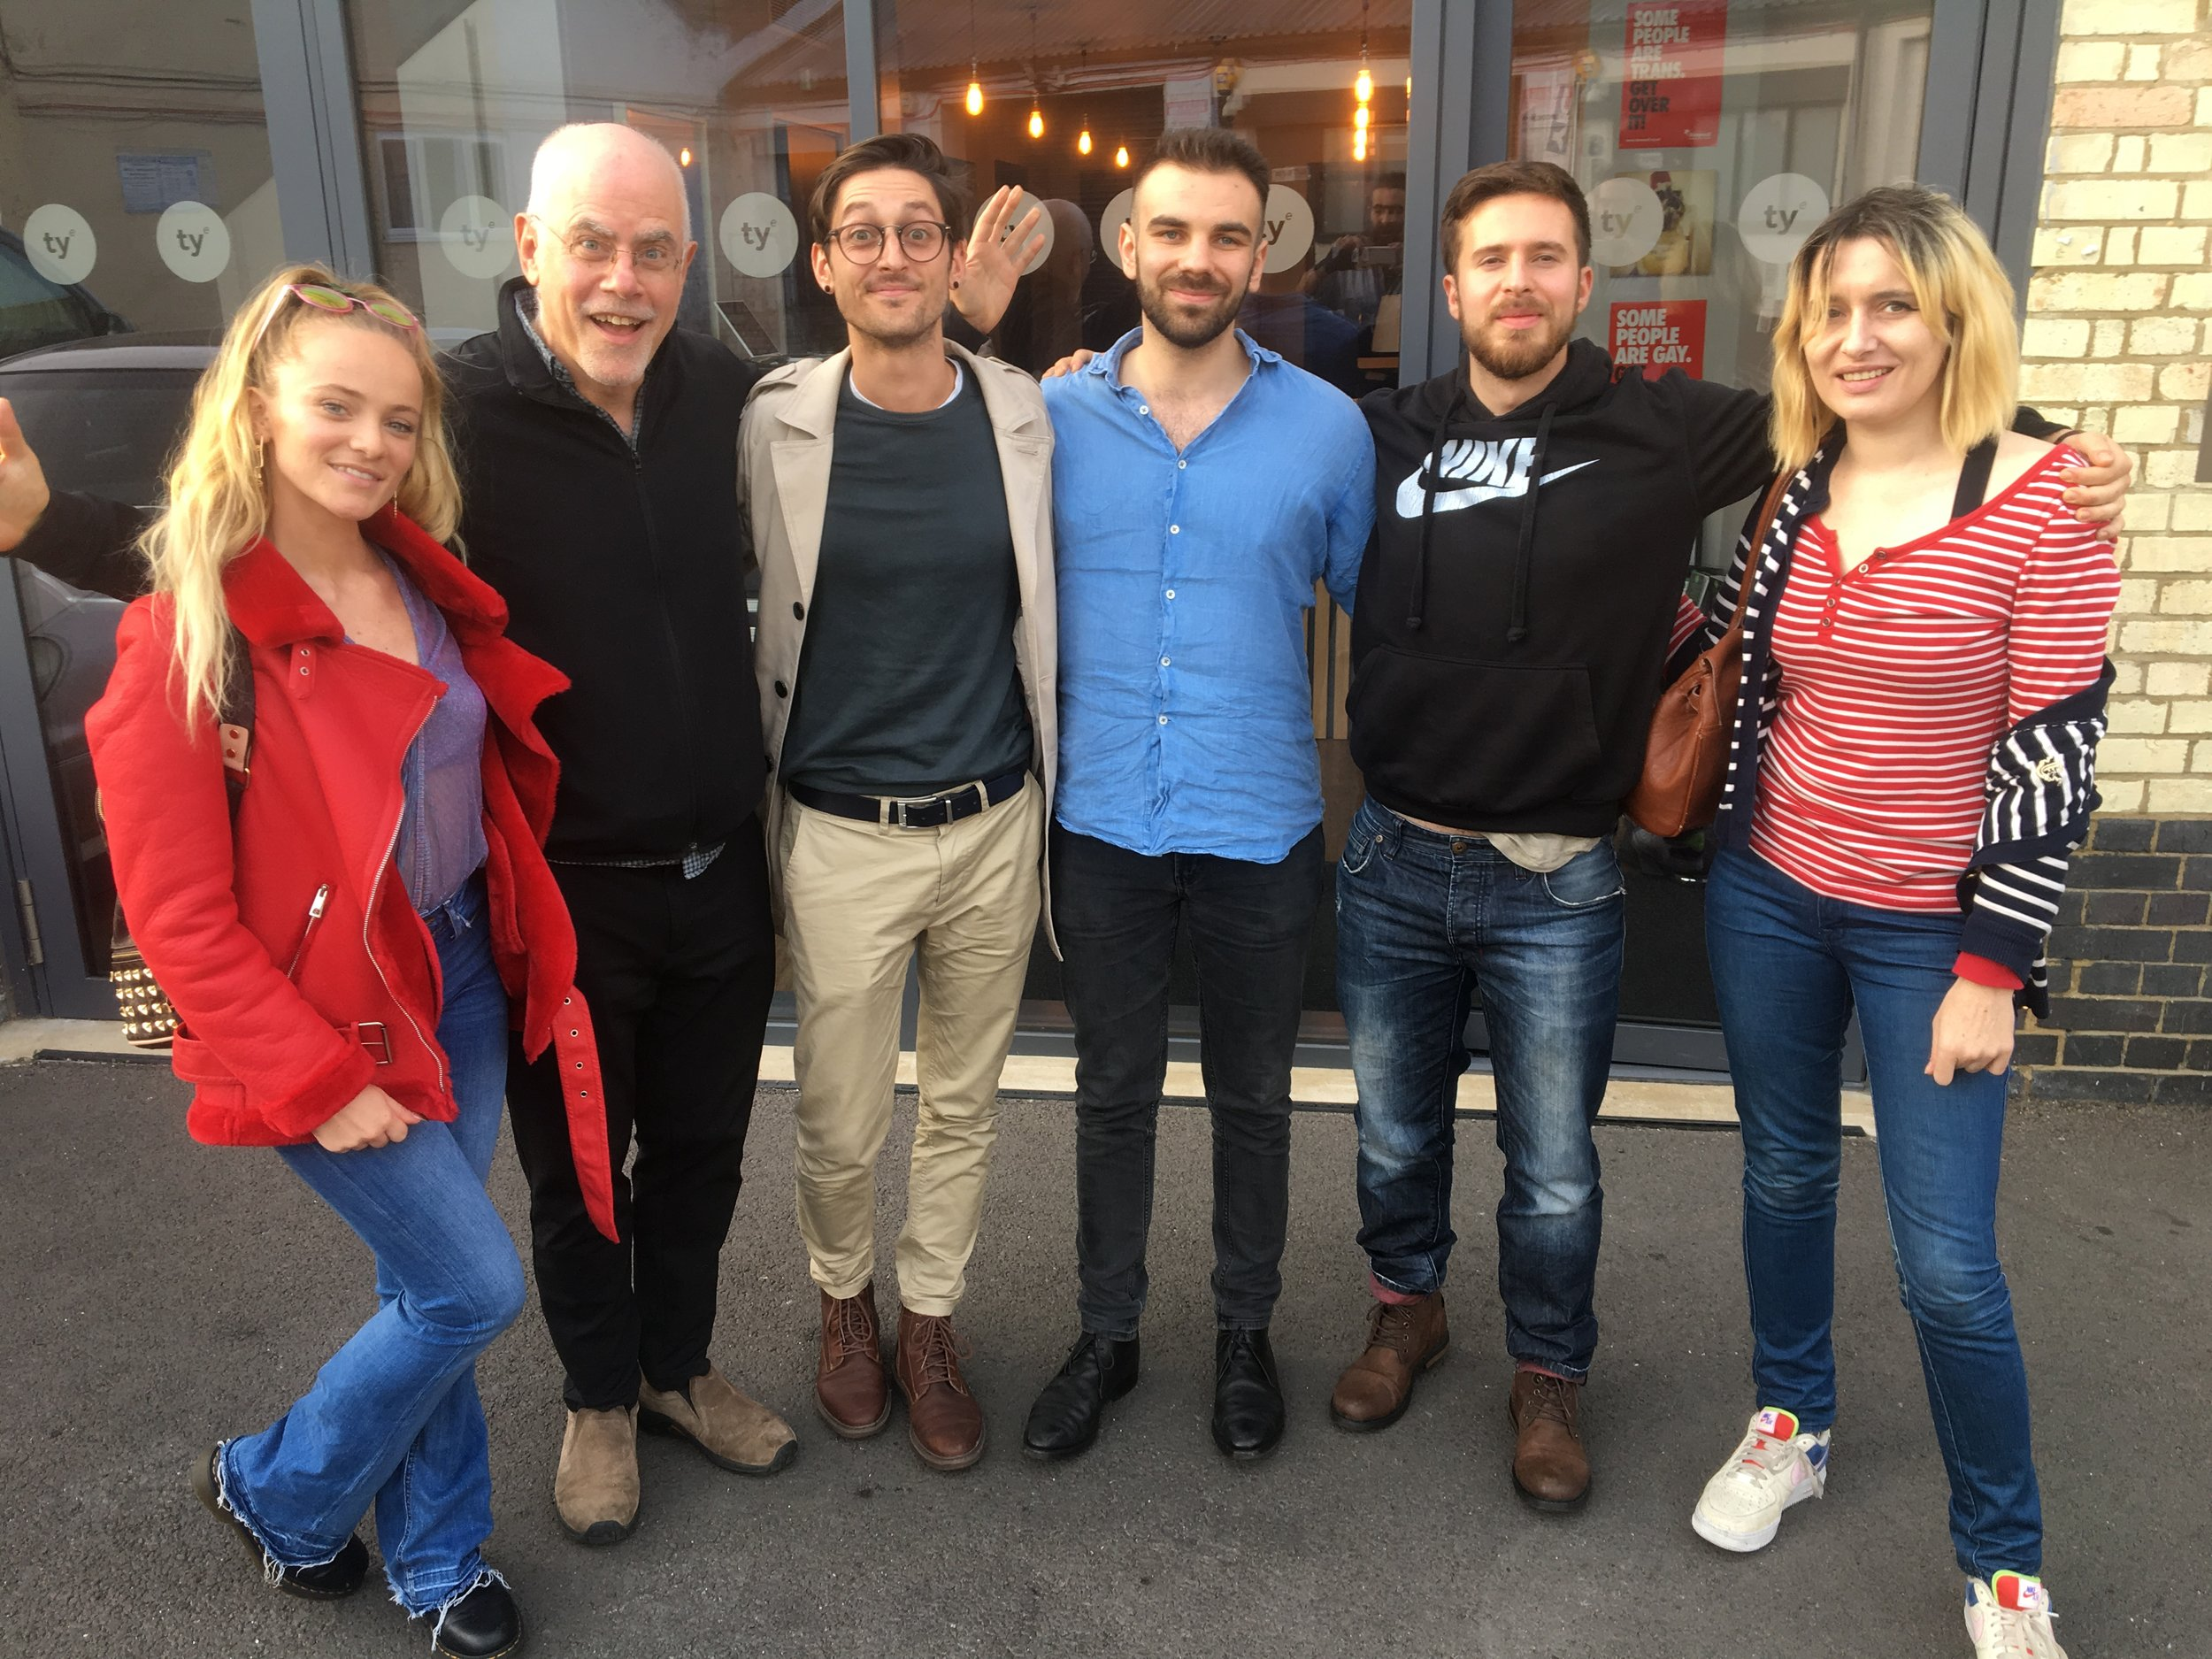 Great London songwriting workshop led by Wayne, with participants Katharina, Melanie, Leo, Alessandro and Crawford.